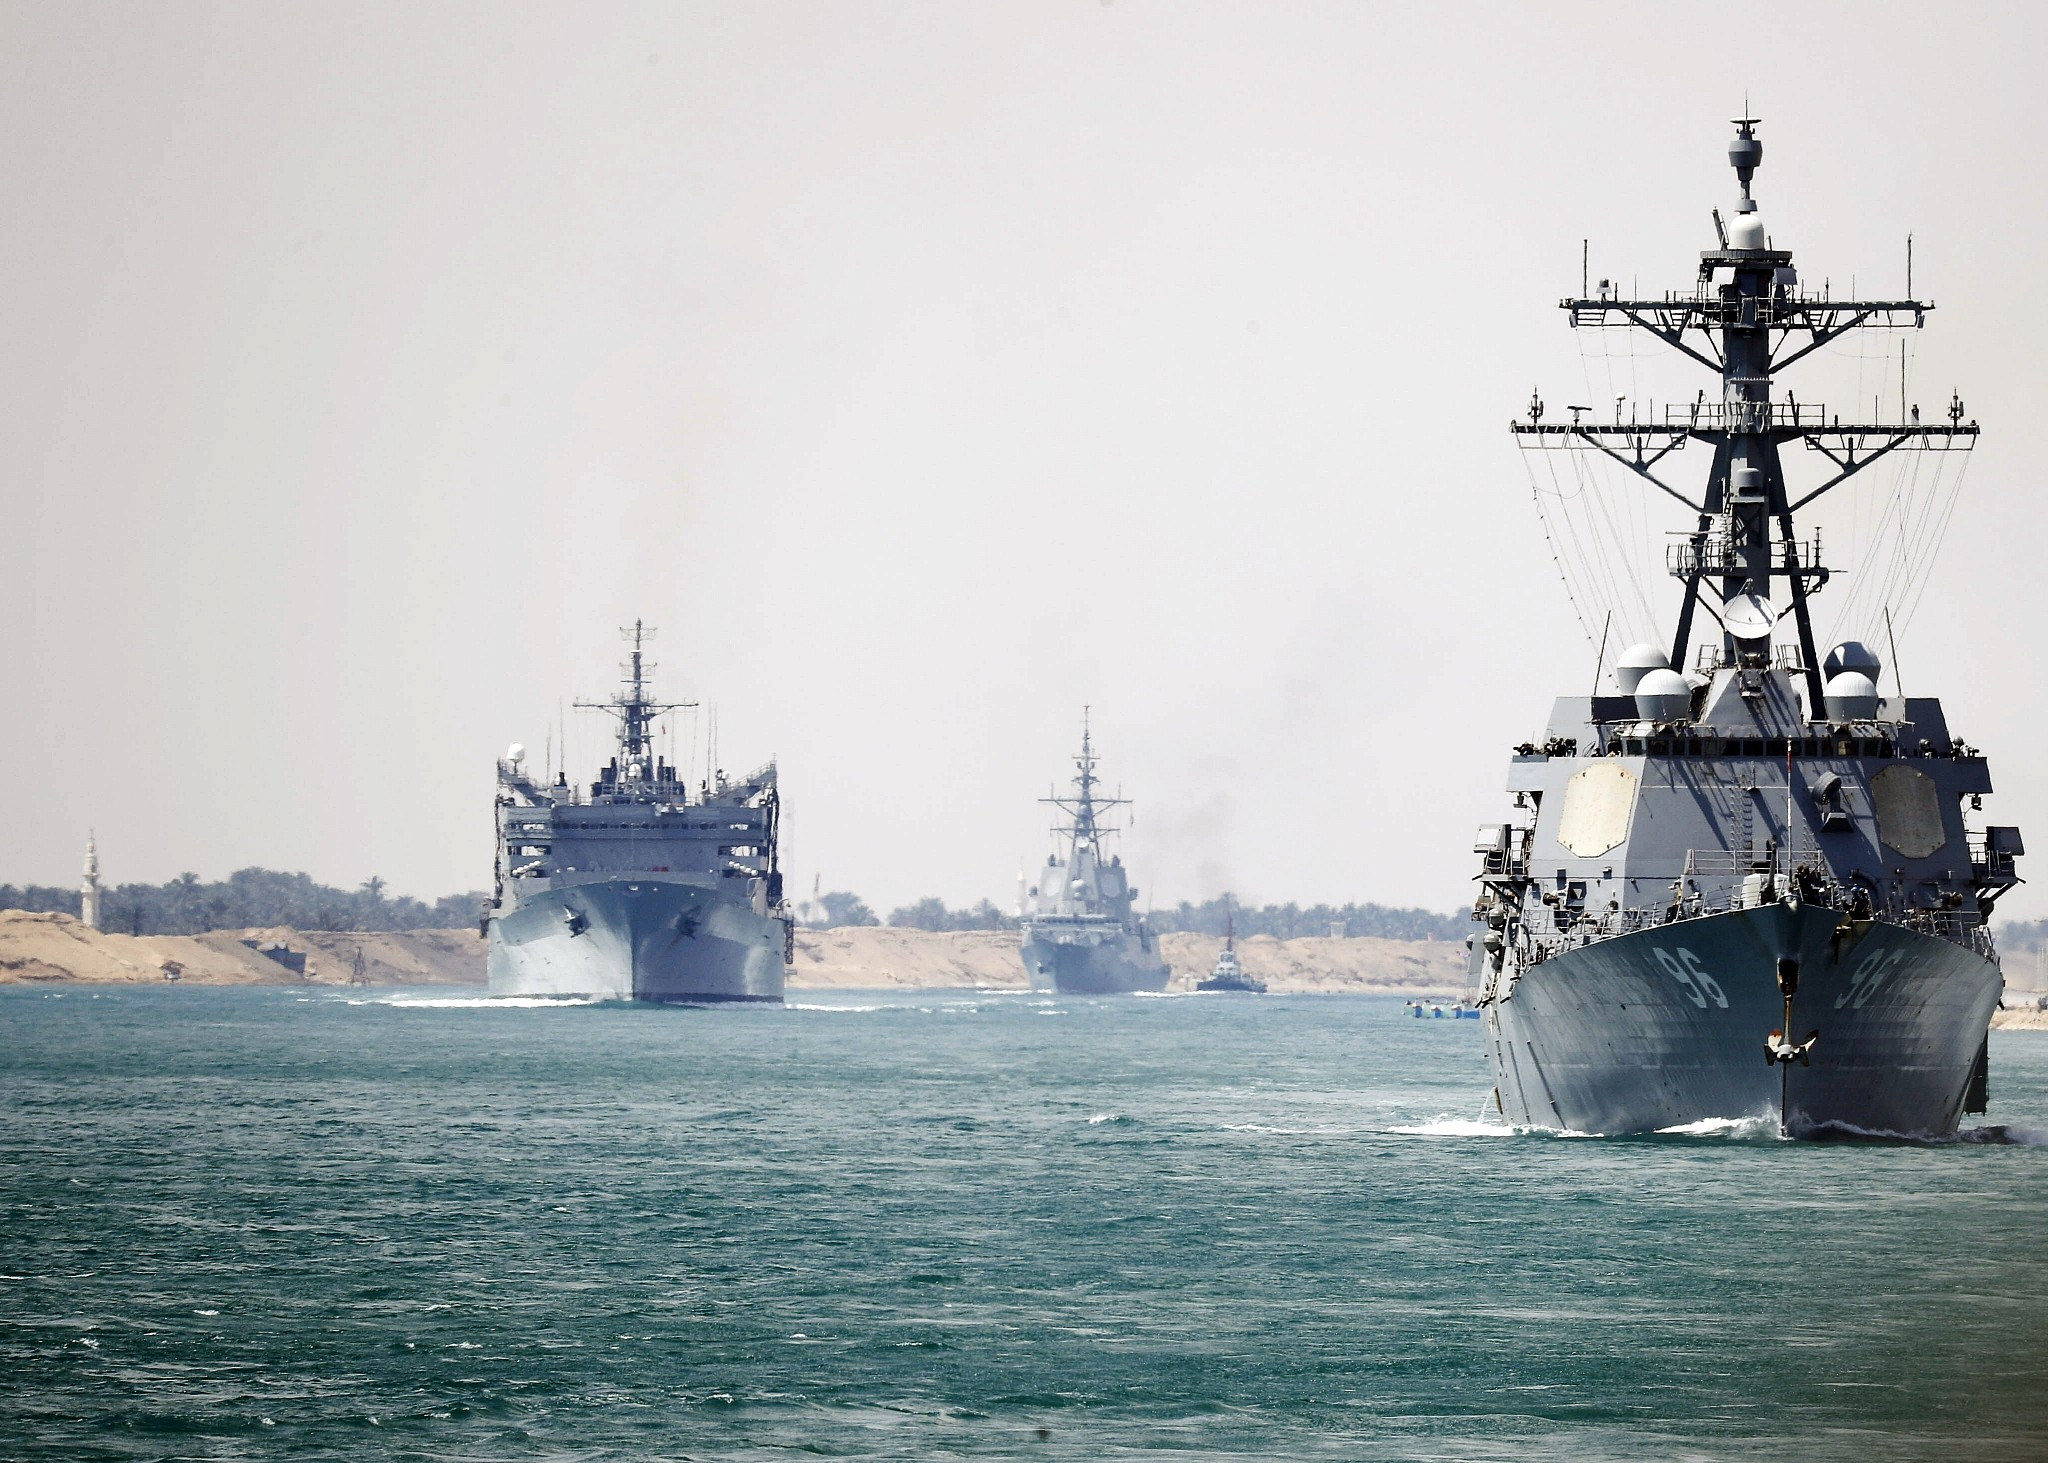 Iranian Missiles On Small Boats Spotted In Persian Gulf: U.S